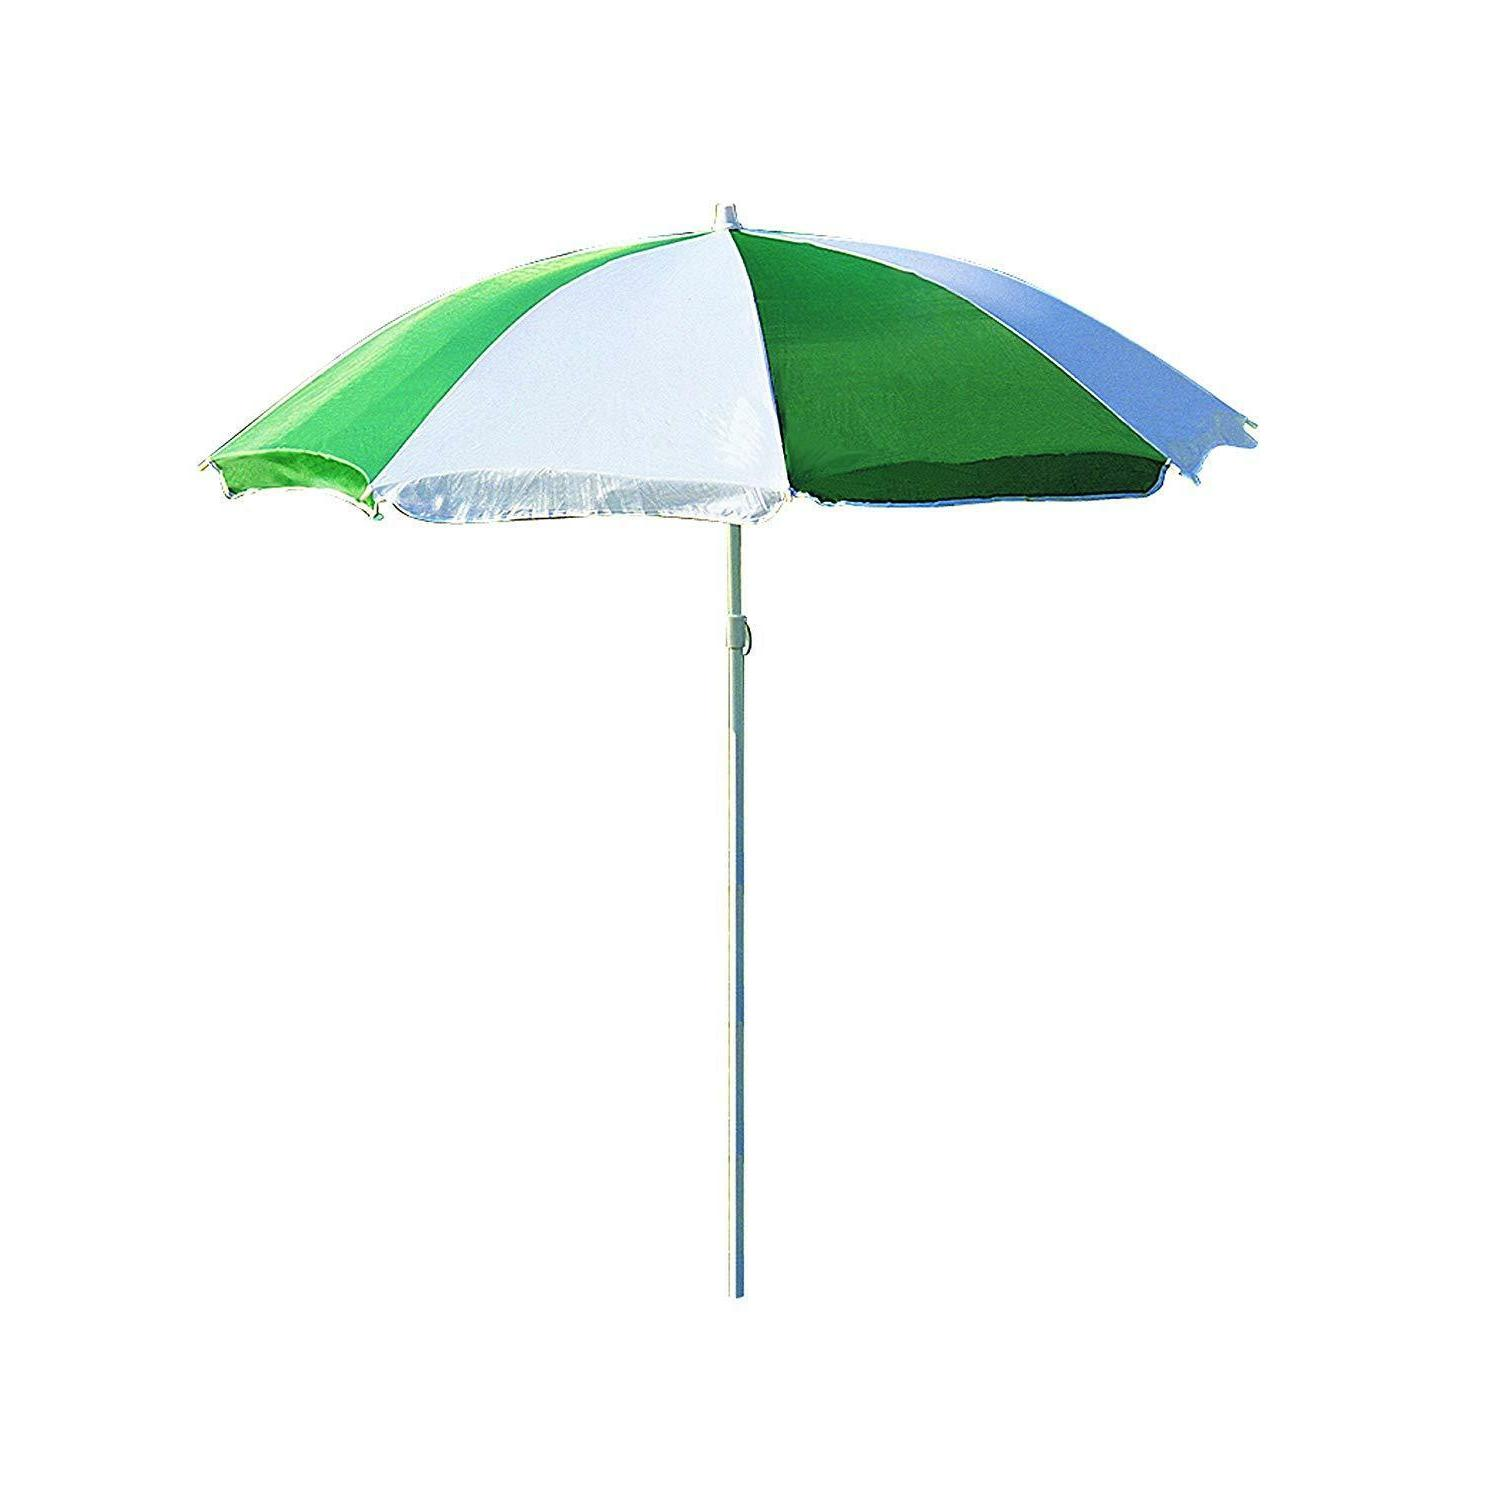 Stansport Picnic Table and Umbrella Pack